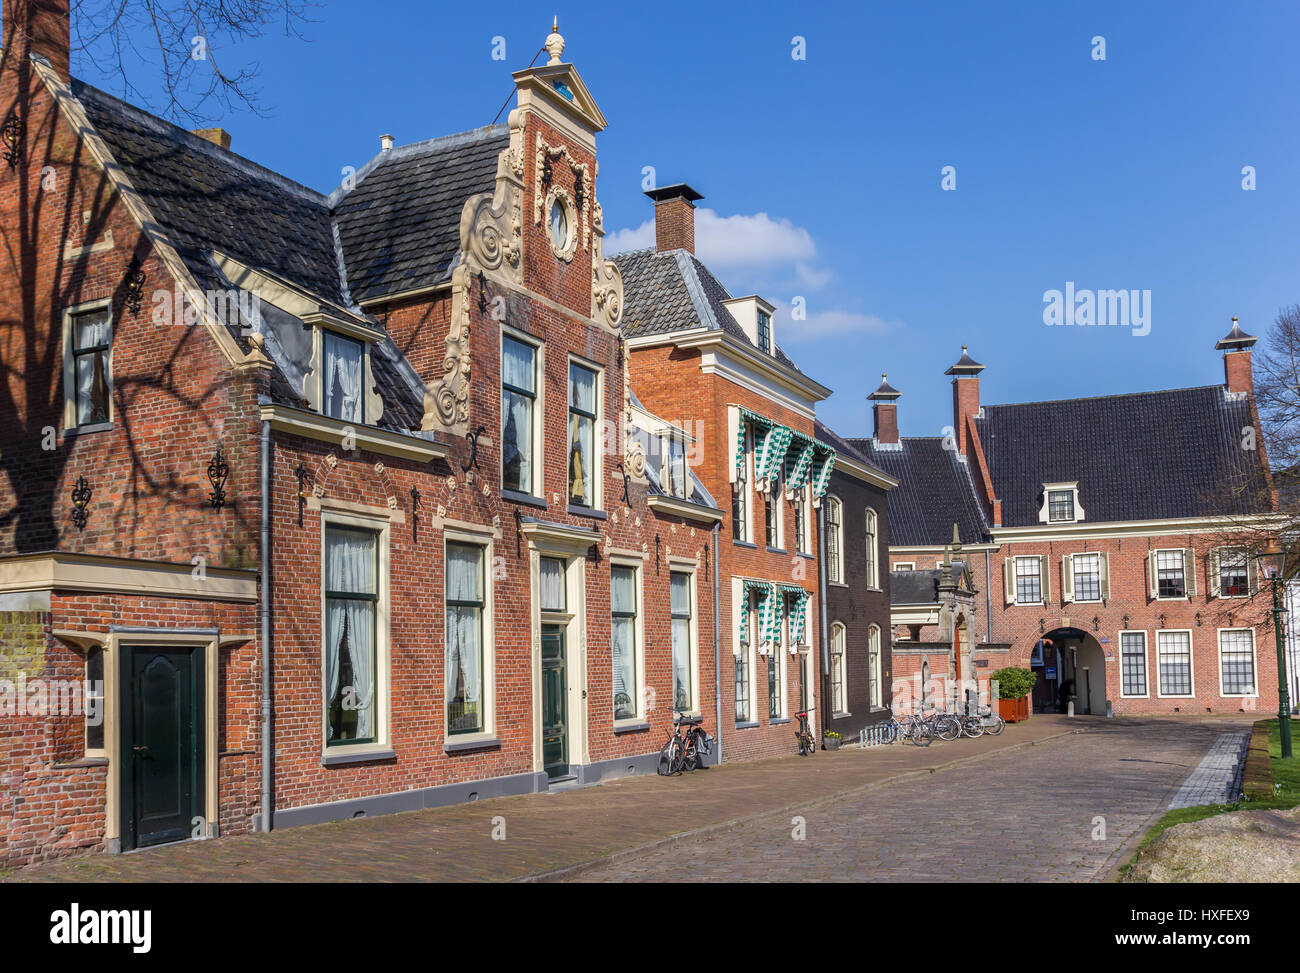 street with old houses in the historical center of groningen stock photo royalty free image. Black Bedroom Furniture Sets. Home Design Ideas